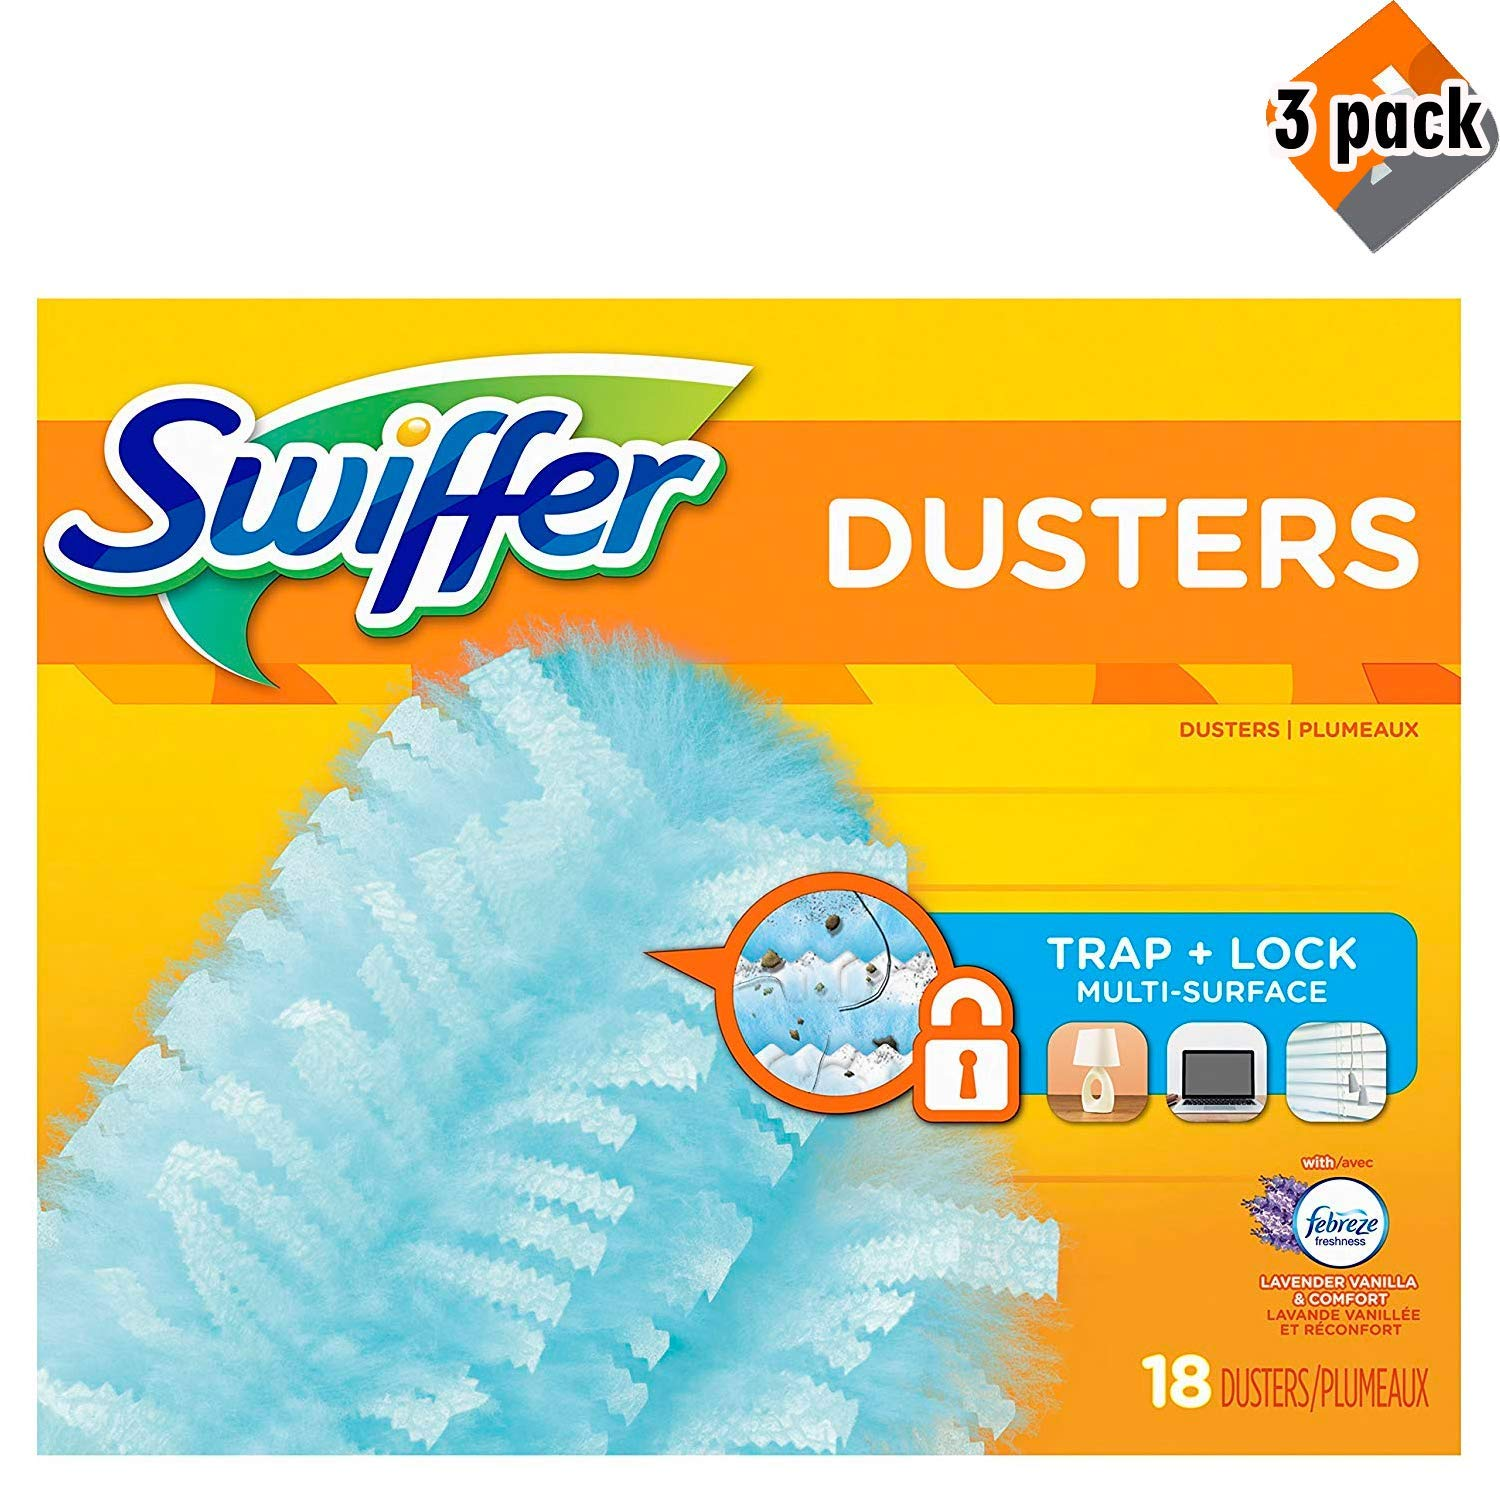 Swiffer 180 Dusters, Multi Surface Refills with Febreze Lavender Vanilla & Comfort Scent, 18 Count, 3 Pack by Swiffer